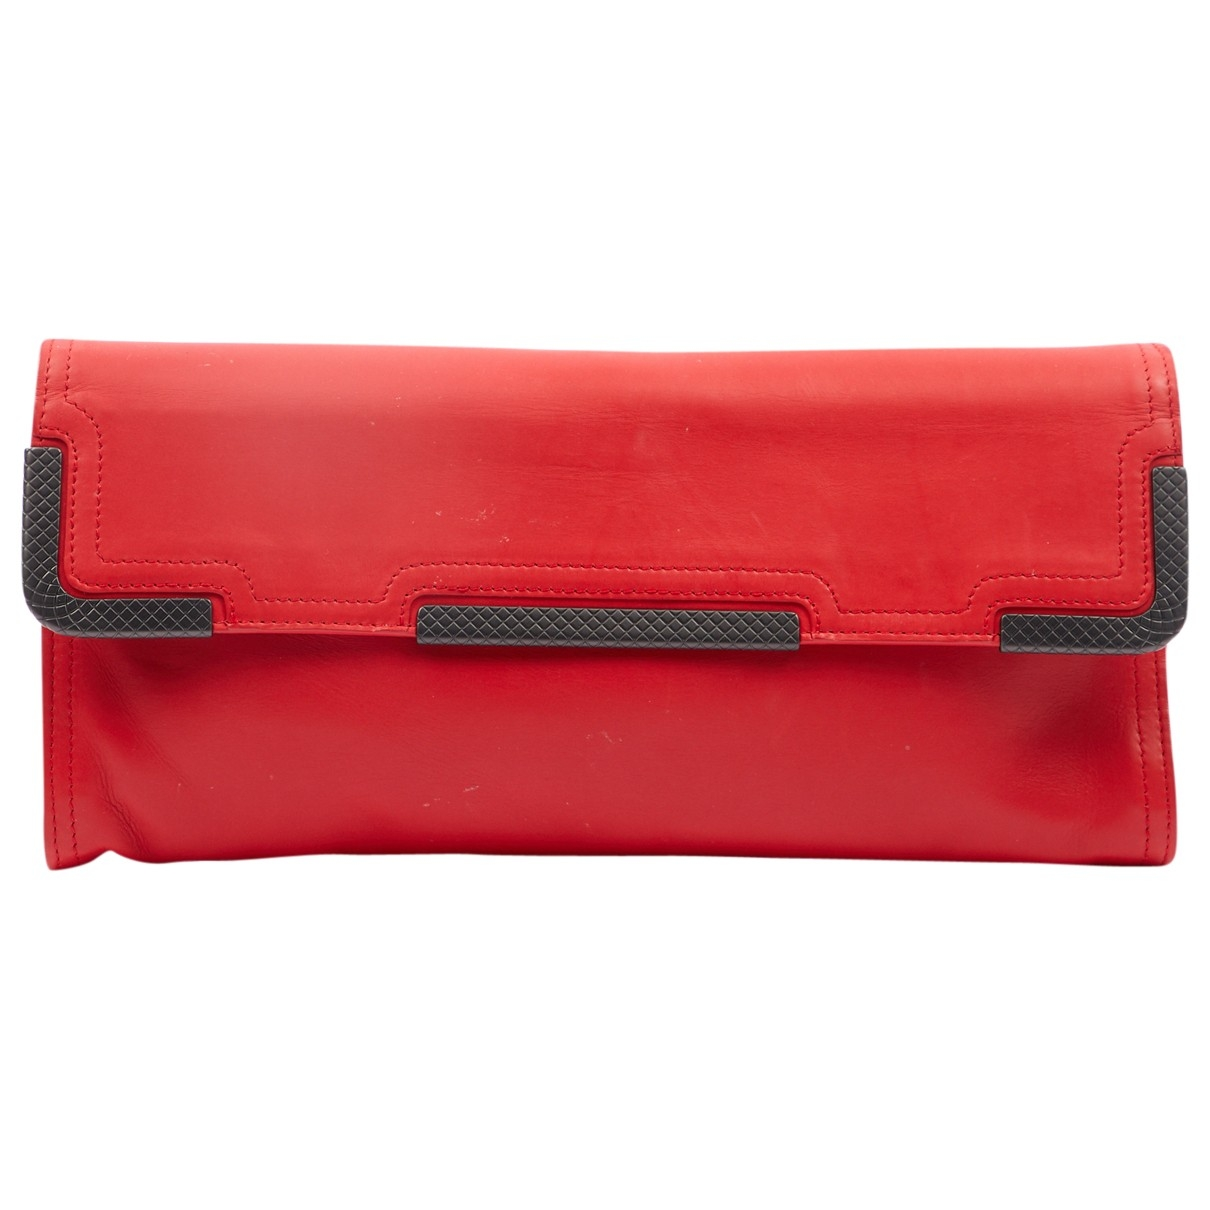 Bottega Veneta \N Clutch in  Rot Leder